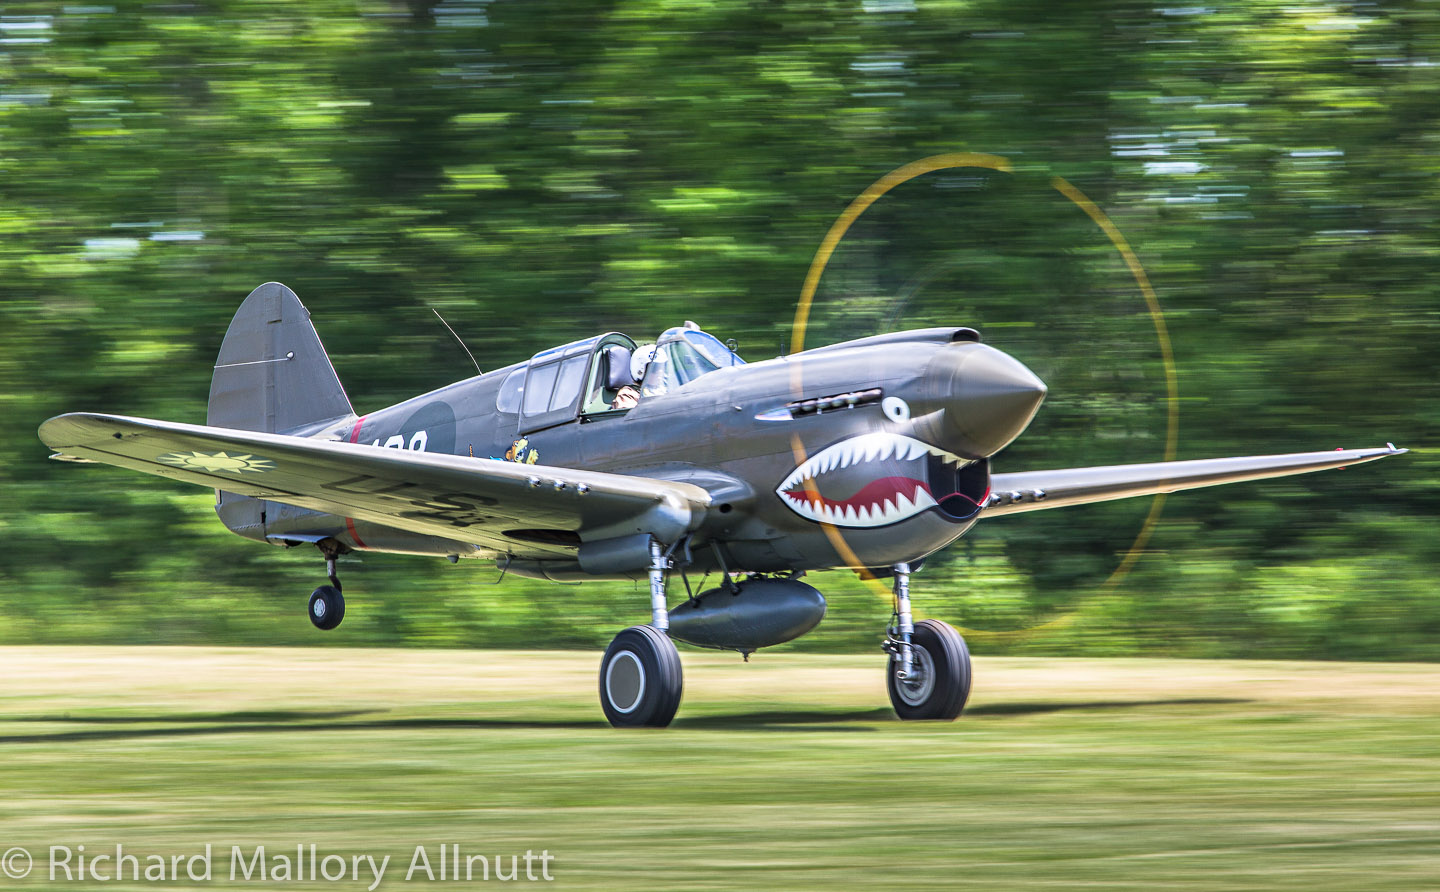 _C8A9967-Edit - Richard Mallory Allnutt photo - Warbirds Over the Beach - Military Aviation Museum - Pungo, VA - May 17, 2014